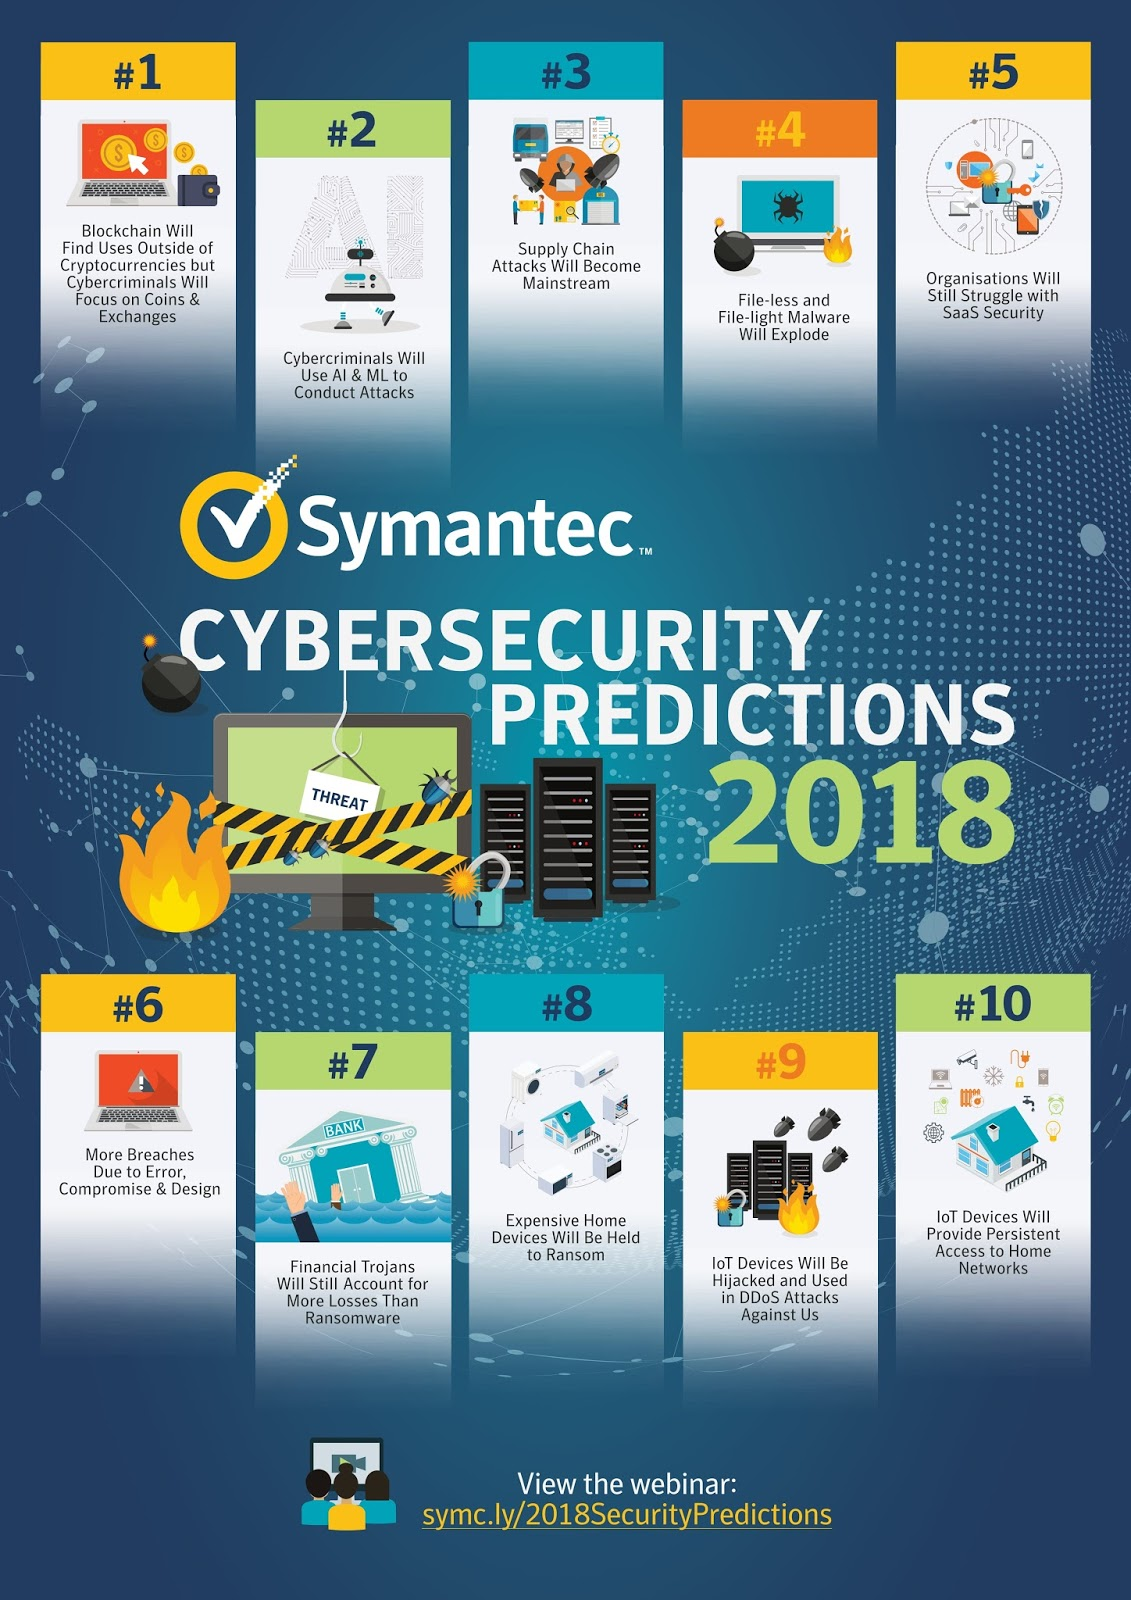 Symantec : 2018 Cyber Security Predictions - The Tech